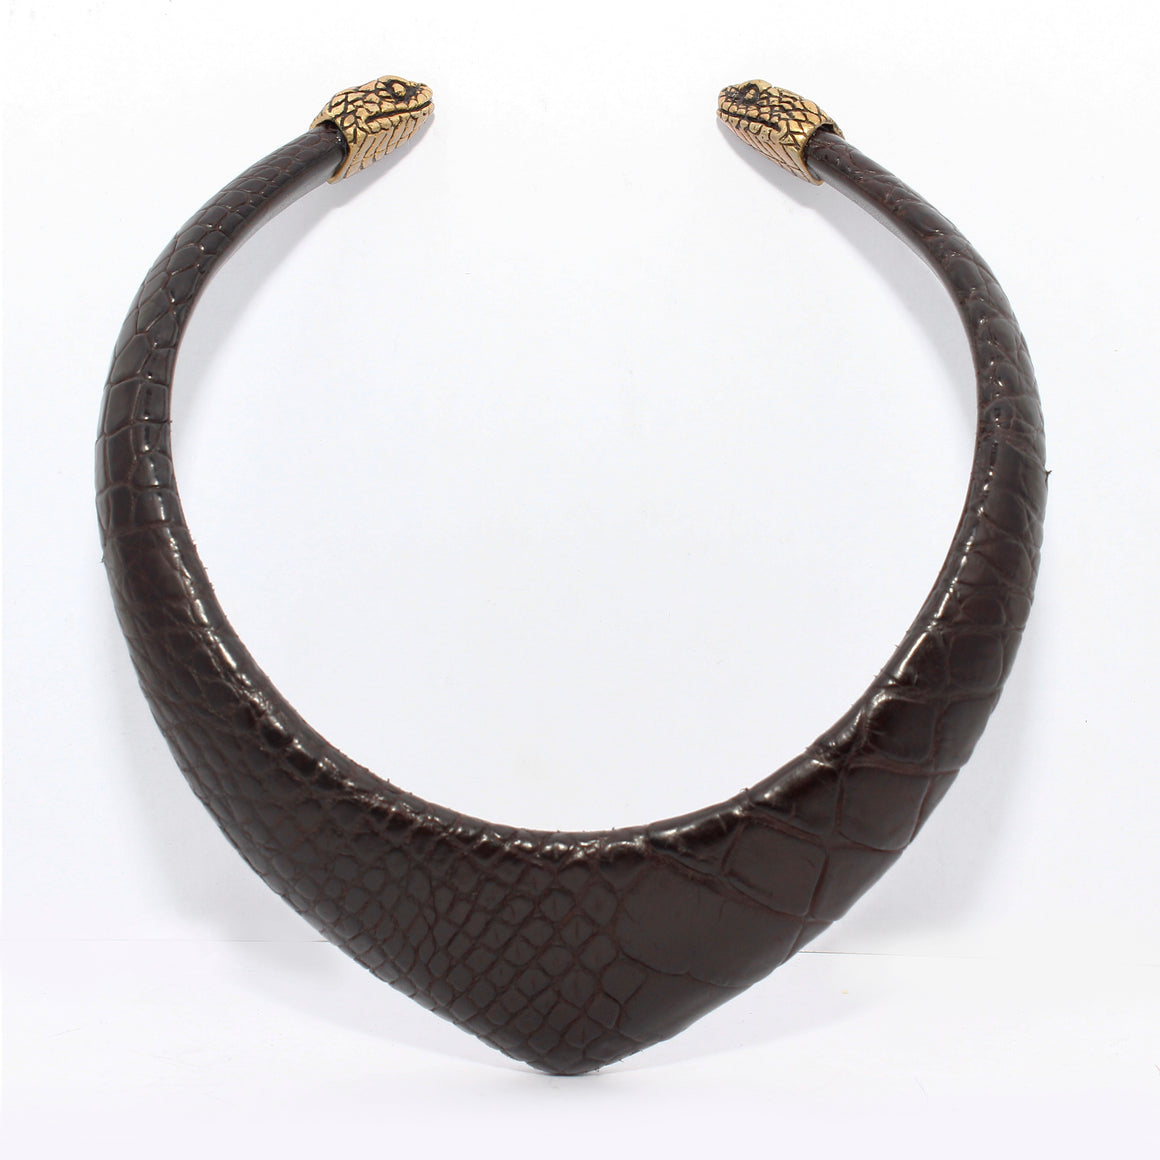 PYRAMID CROCODILE CHOKER WITH CHAMELEON CAPS